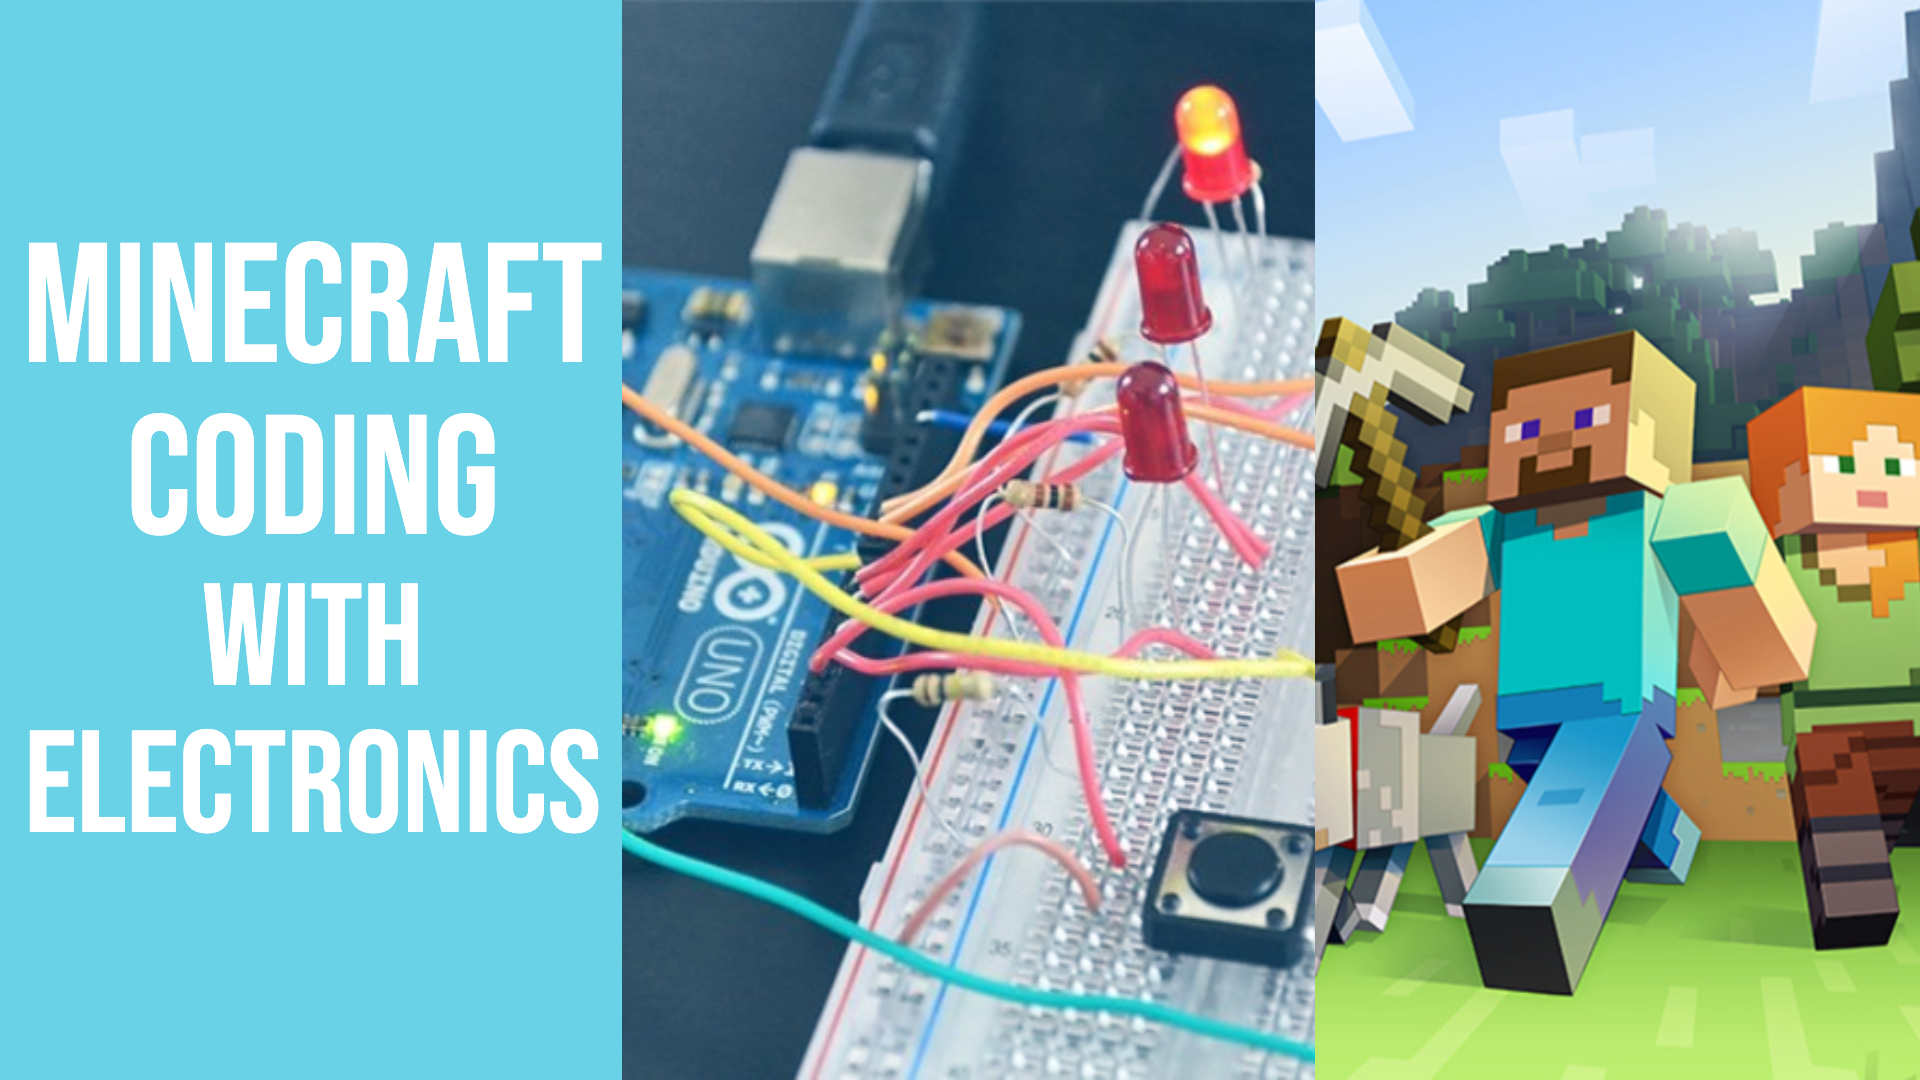 Minecraft Coding with Electronics